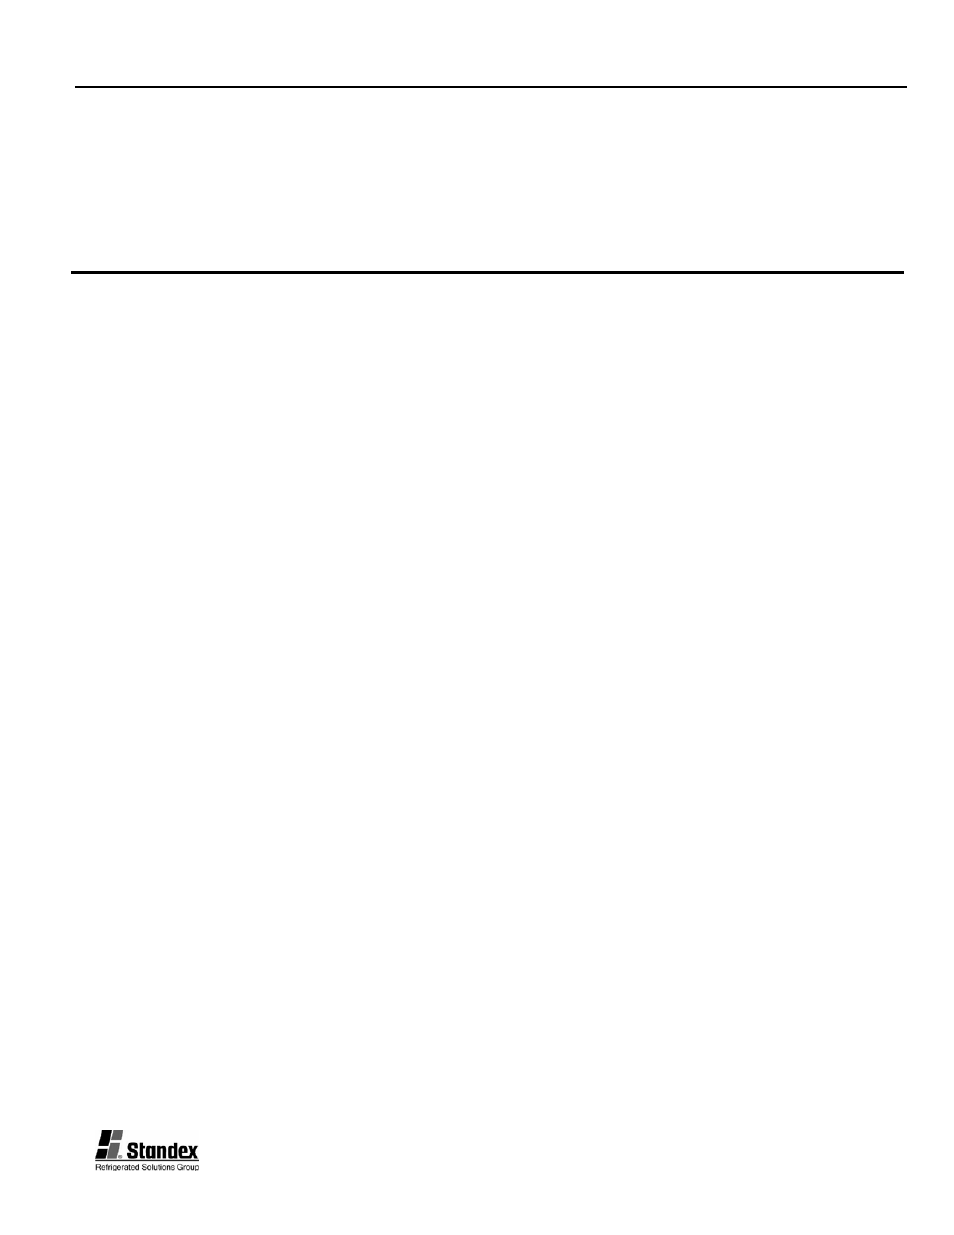 Nor-Lake Topping and Storage Dipping Ice Cream Freezers User Manual on internet of things diagrams, electrical diagrams, snatch block diagrams, troubleshooting diagrams, honda motorcycle repair diagrams, electronic circuit diagrams, led circuit diagrams, series and parallel circuits diagrams, gmc fuse box diagrams, smart car diagrams, transformer diagrams, friendship bracelet diagrams, motor diagrams, engine diagrams, pinout diagrams, lighting diagrams, sincgars radio configurations diagrams, battery diagrams, switch diagrams, hvac diagrams,